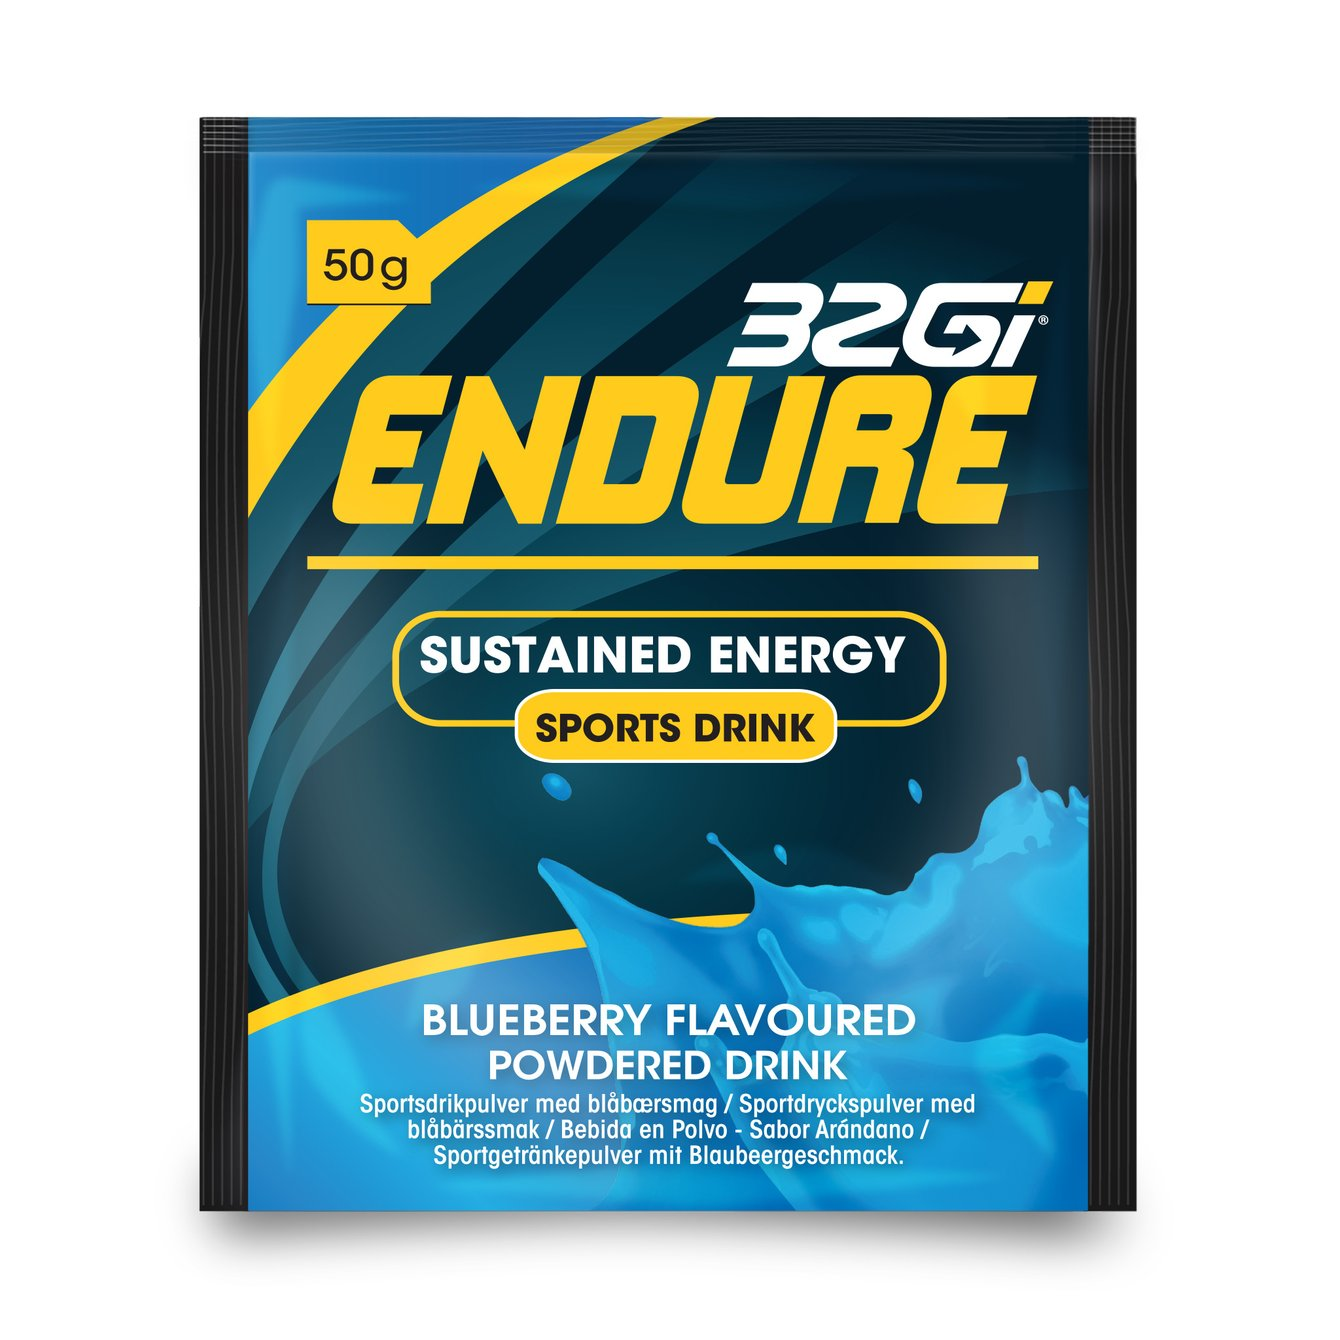 32Gi ENDURE SACHET BLUEBERRY